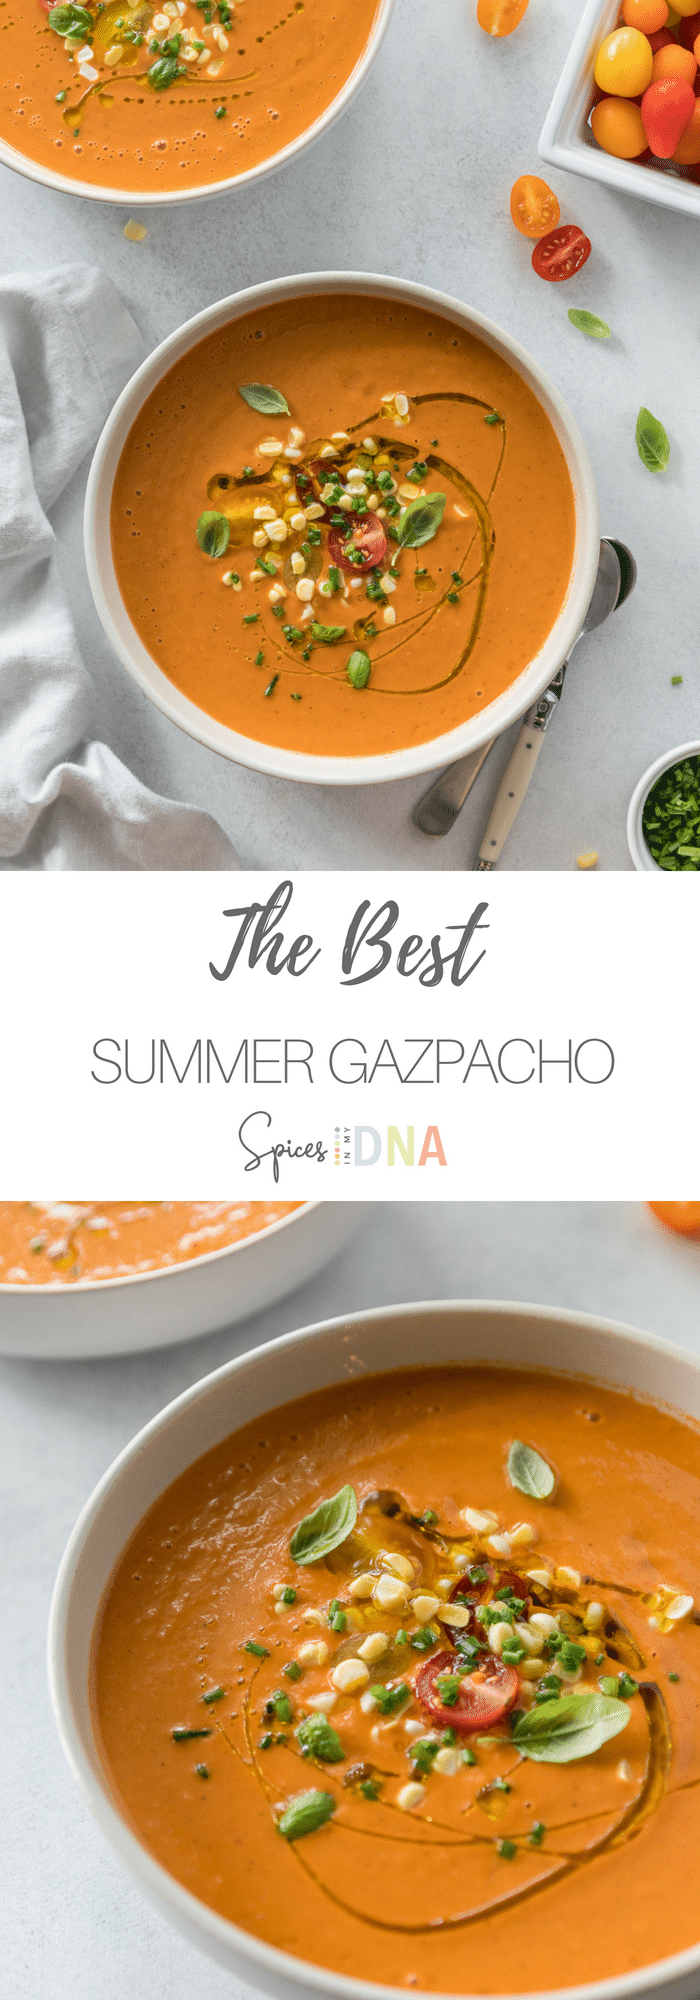 The Best Summer Gazpacho is so easy to make (in the blender!), incredibly fresh, flavorful, and super refreshing for a hot summer day. It's great for using up late summer produce and tomatoes from the garden, and makes a super light meal or appetizer! #gazpacho #soup #summerrecipes